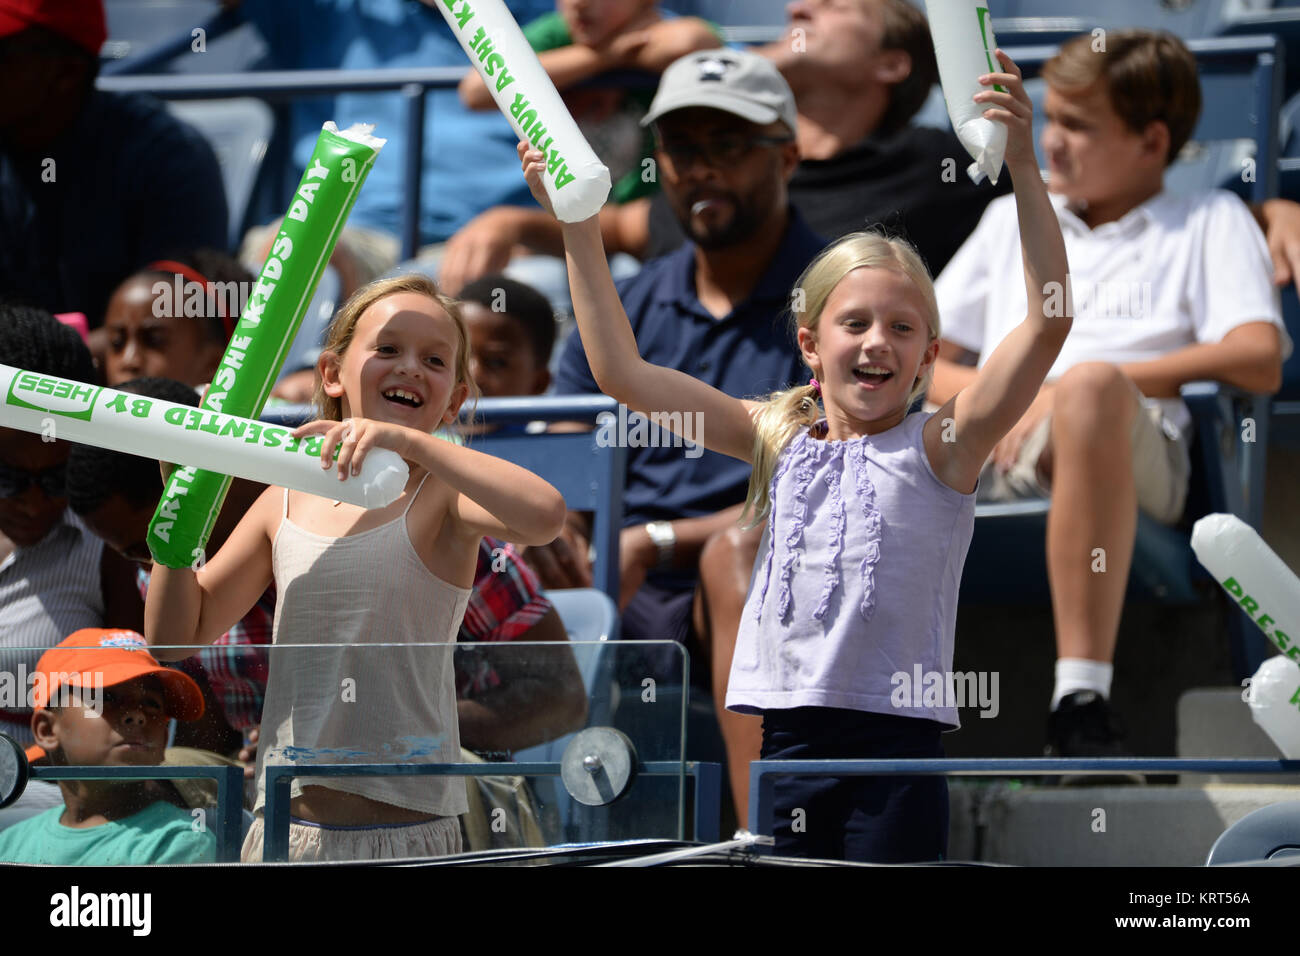 NEW YORK, NY - AUGUST 29: Atmosphere  during Arthur Ashe Kids' Day at the USTA Billie Jean King National Tennis Stock Photo